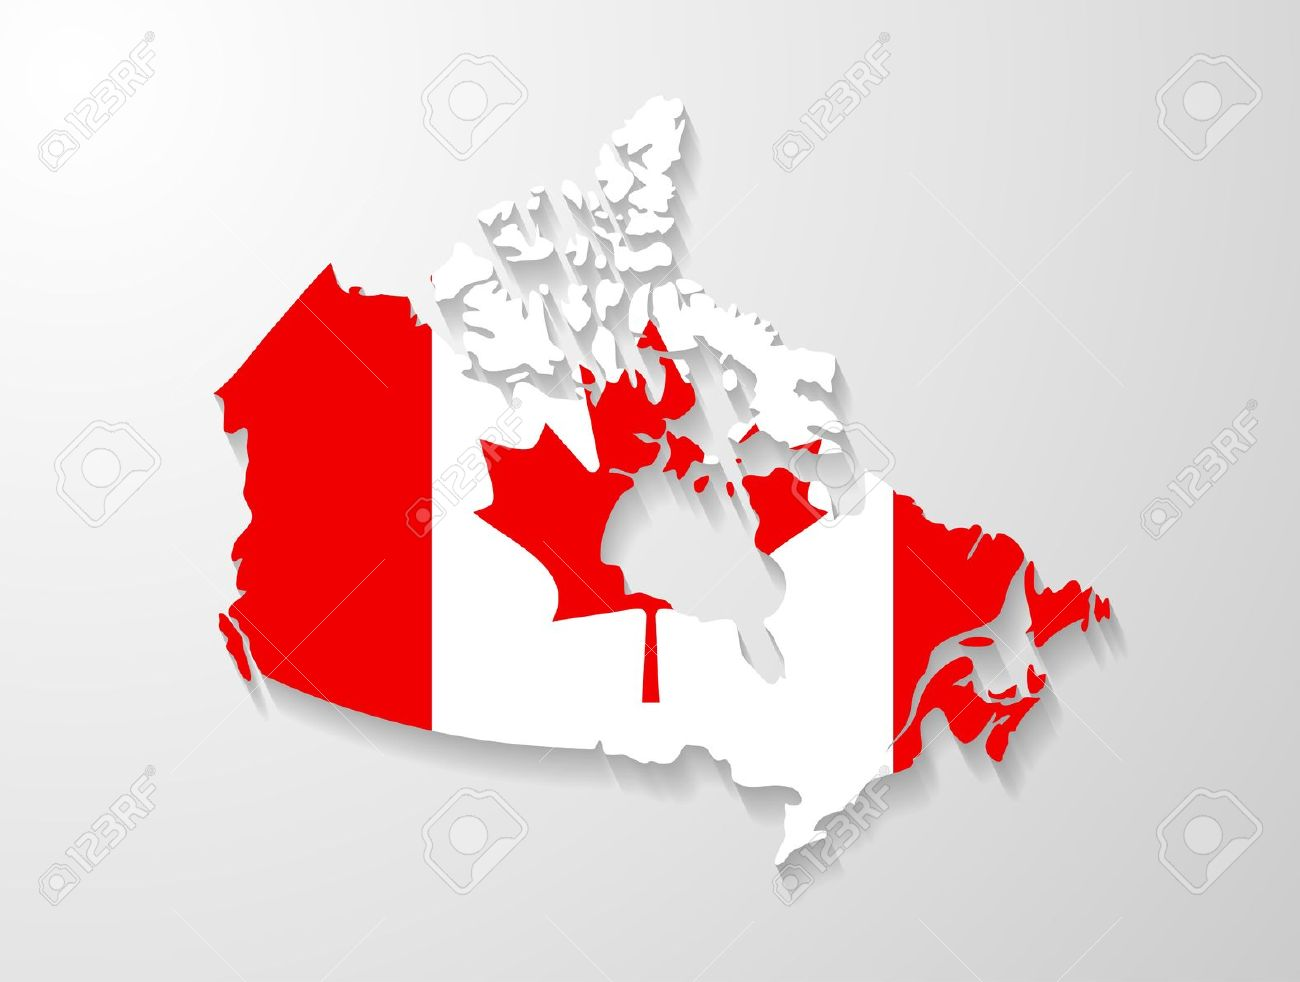 Canada Map Images Stock Pictures Royalty Free Canada Map Photos - Canada  map logo